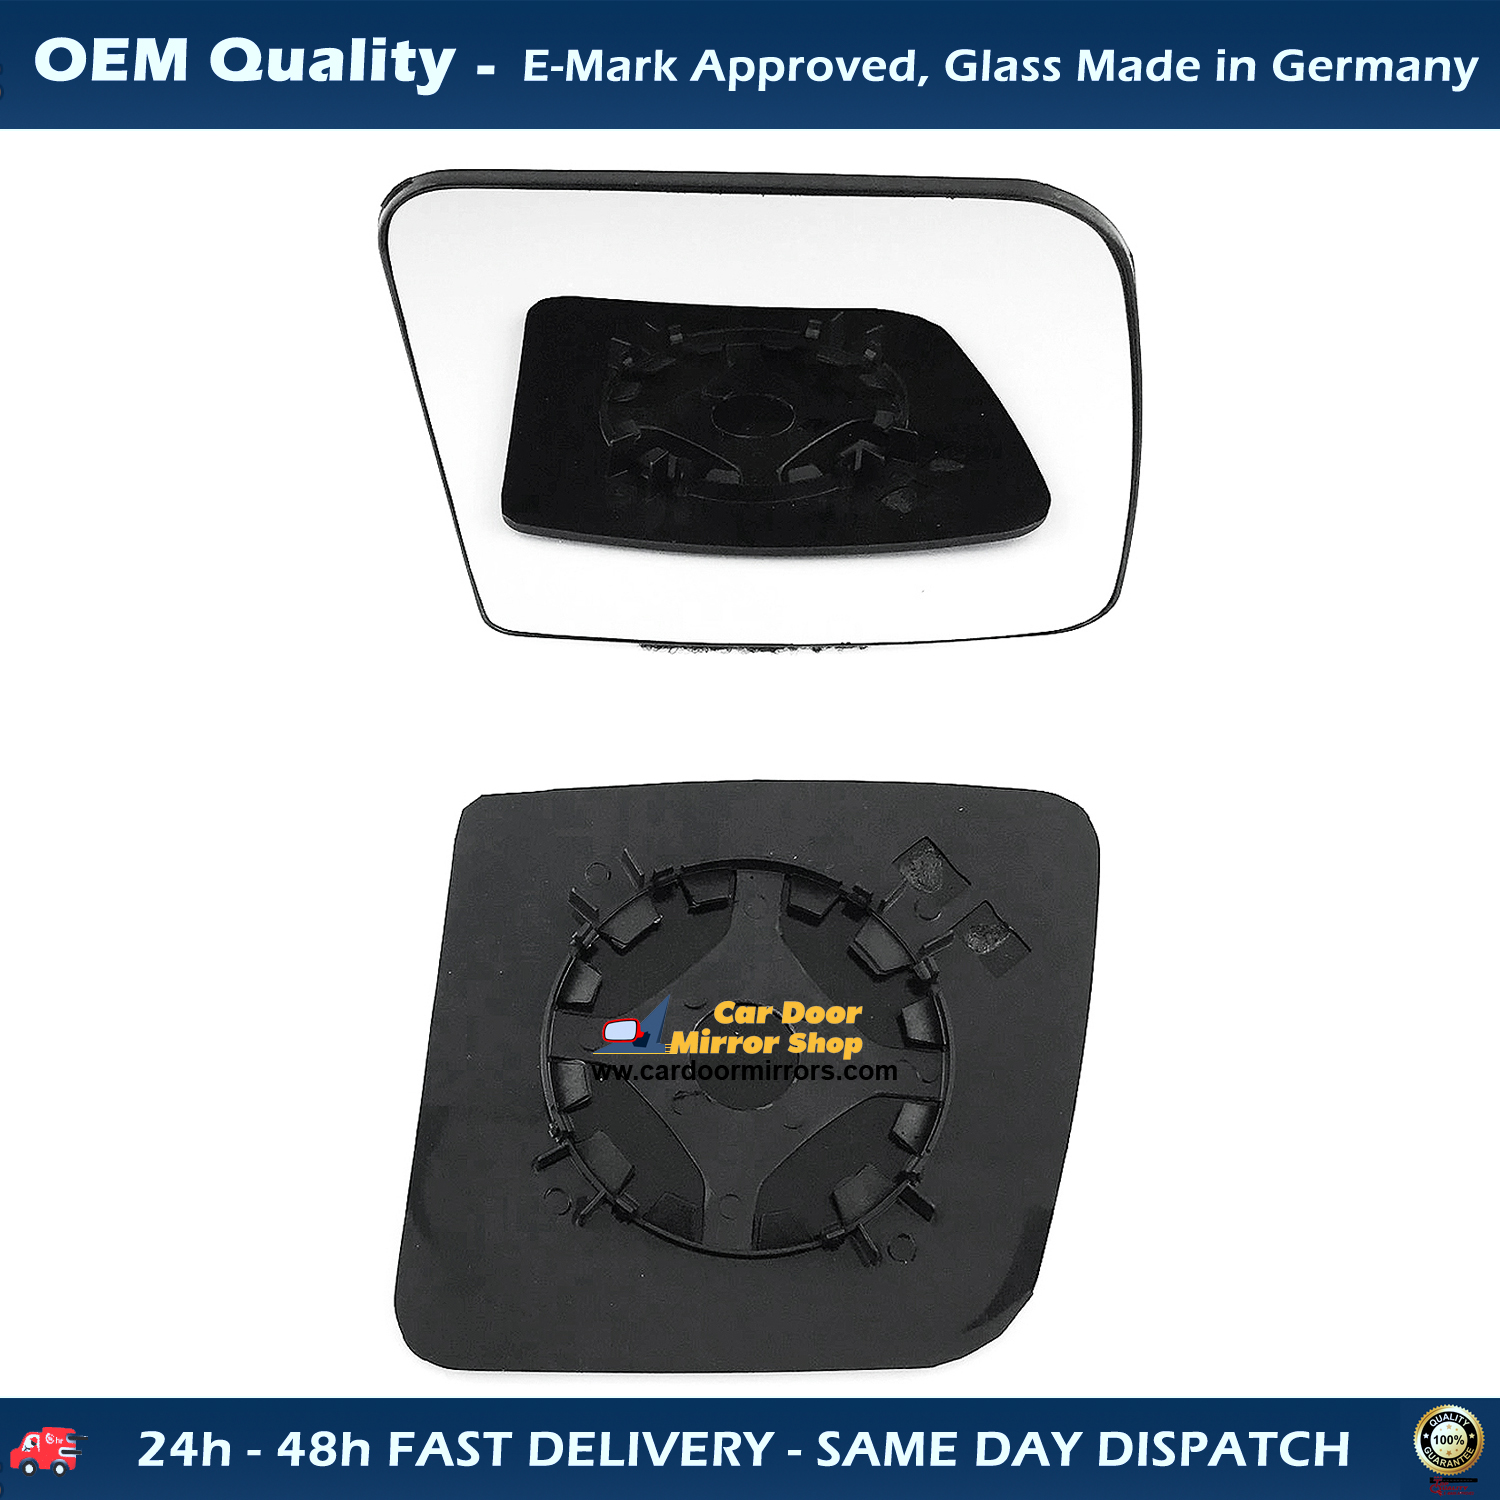 Low Price Guarantee On Ford Transit Connect Wing Mirror